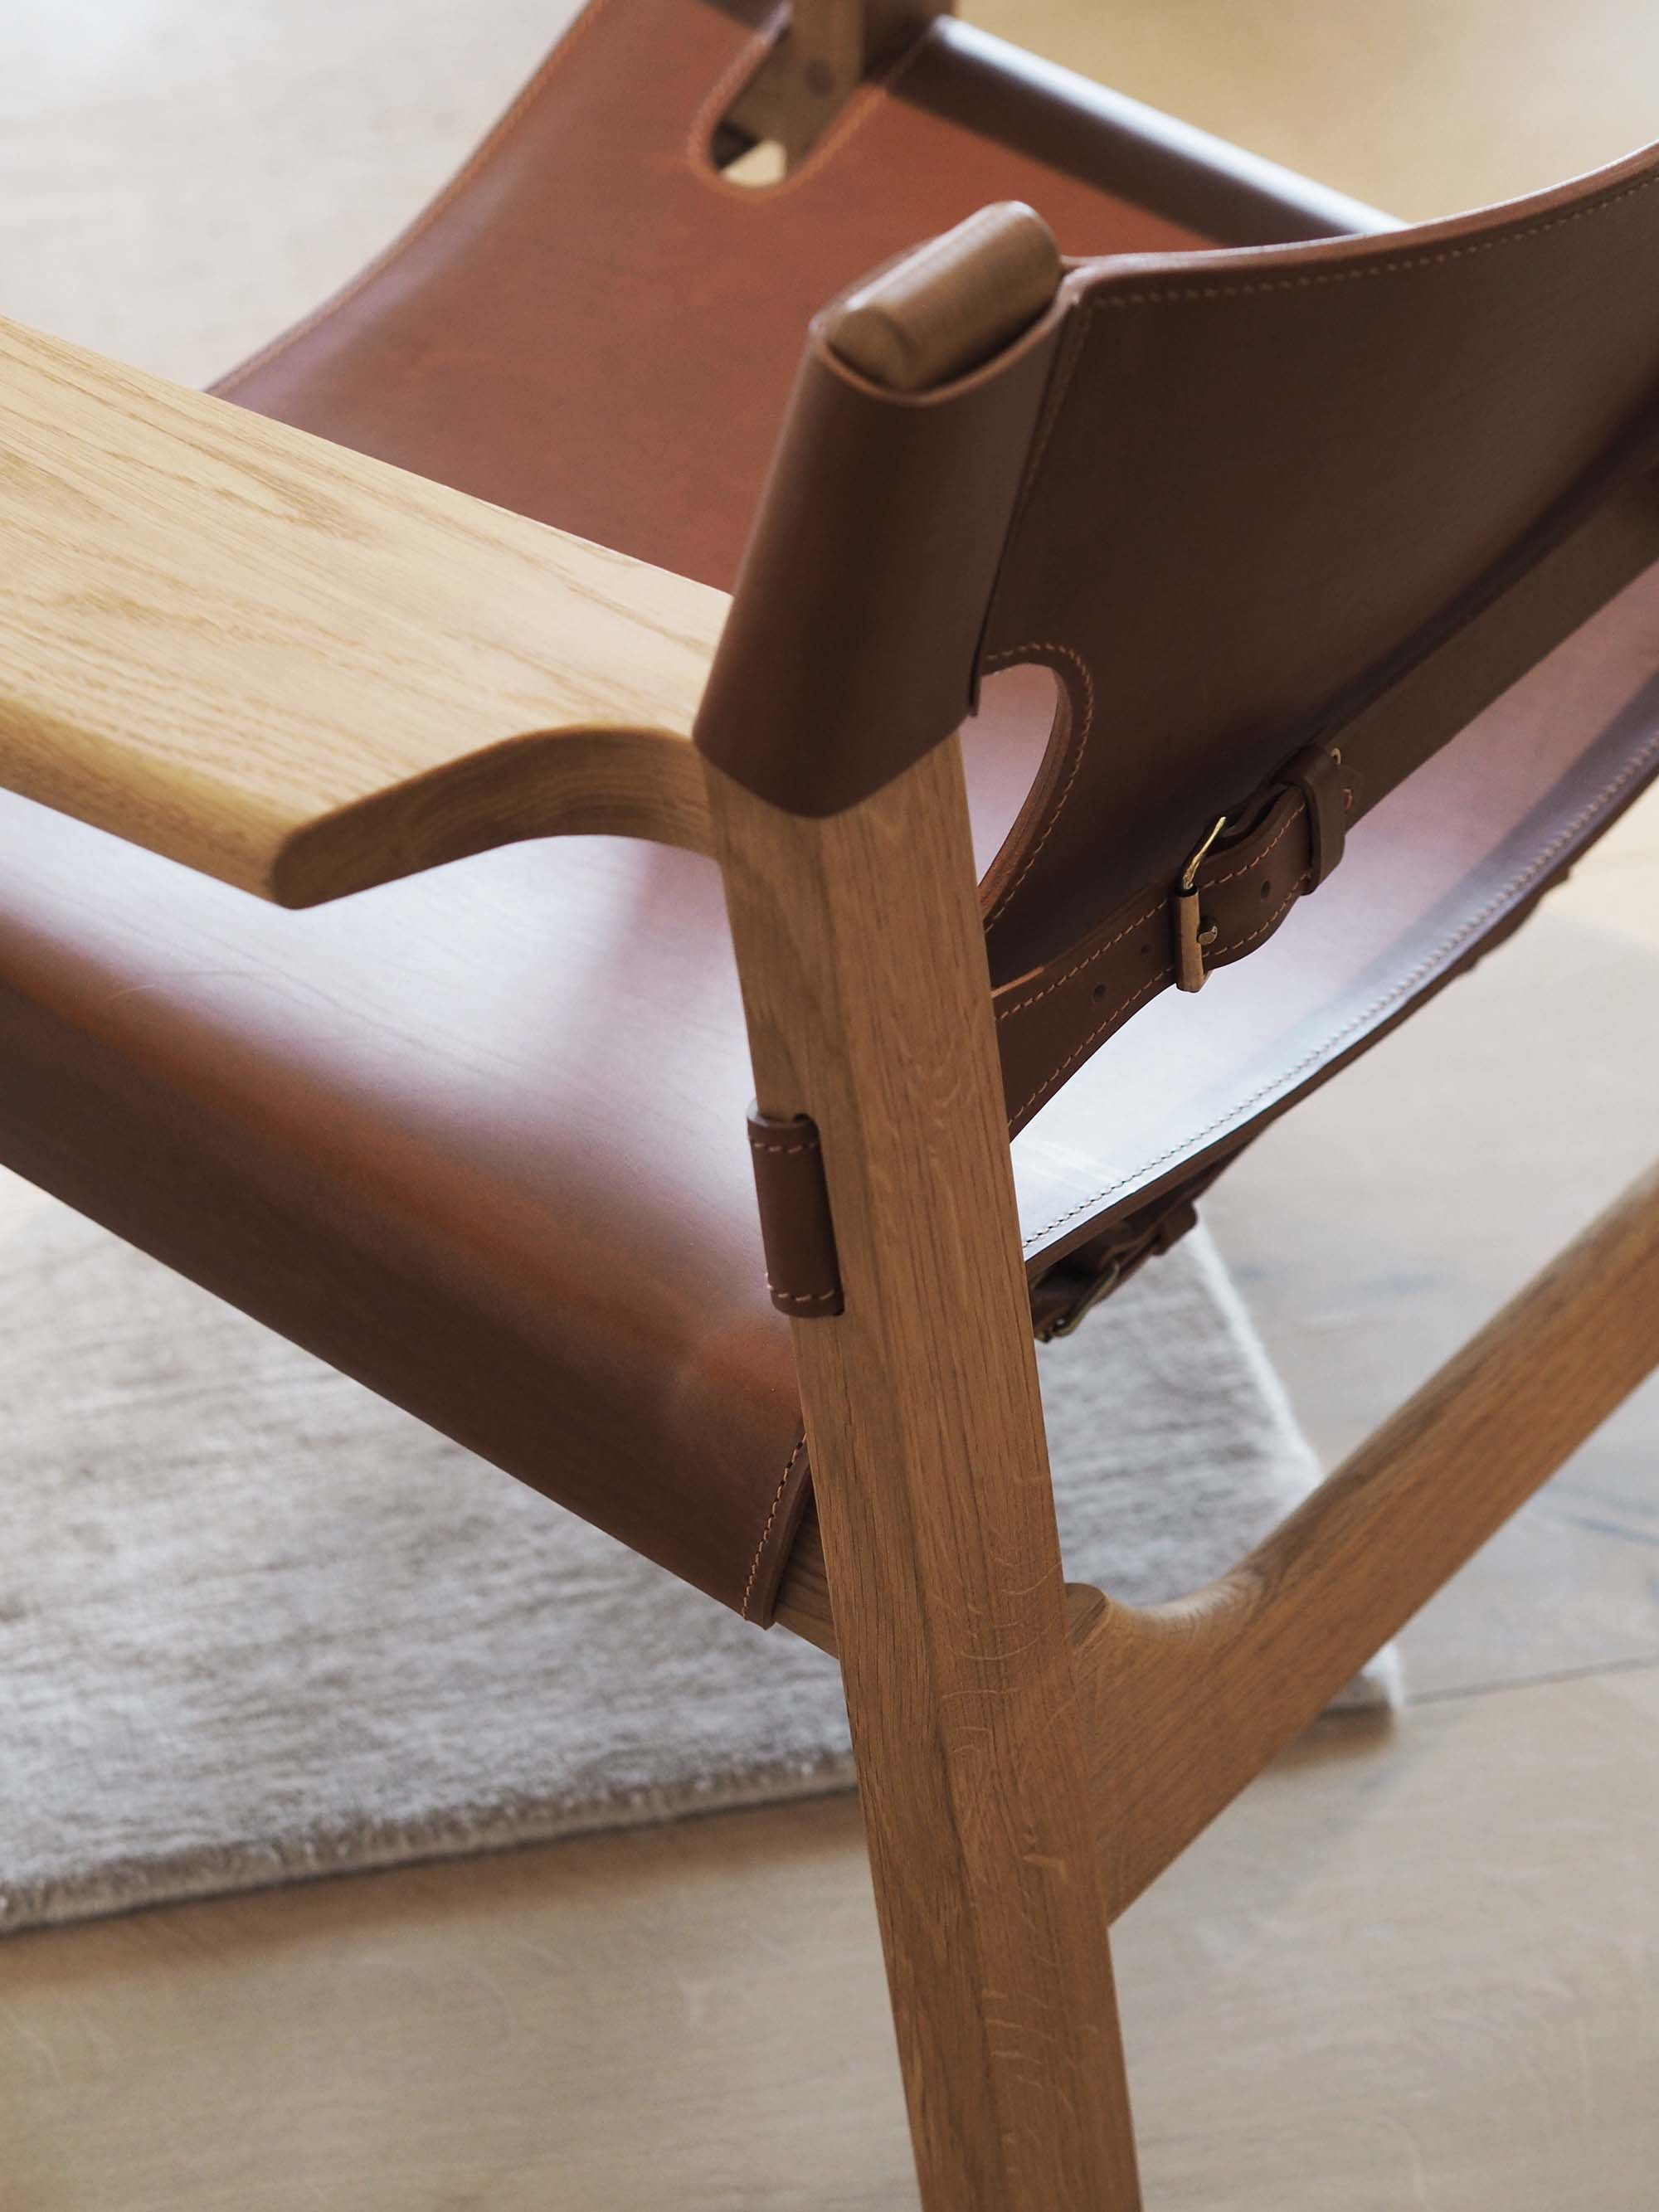 design in detail fredericia s the spanish chair by børge mogensen